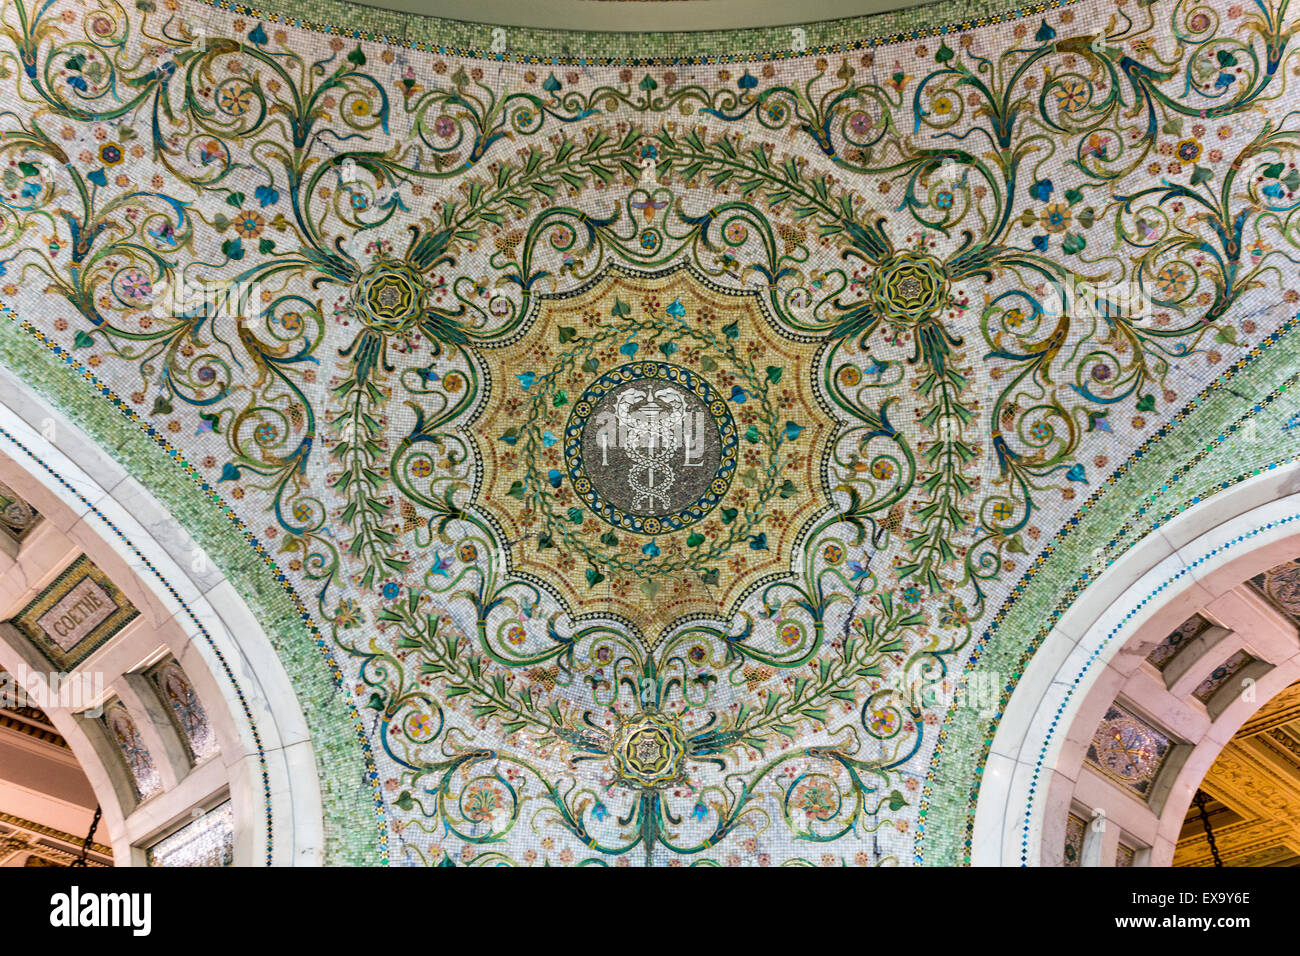 detail of mosaic on pendentive, Chicago Cultural Center, formerly the Chicago Public Library, Chicago, Illinois, - Stock Image